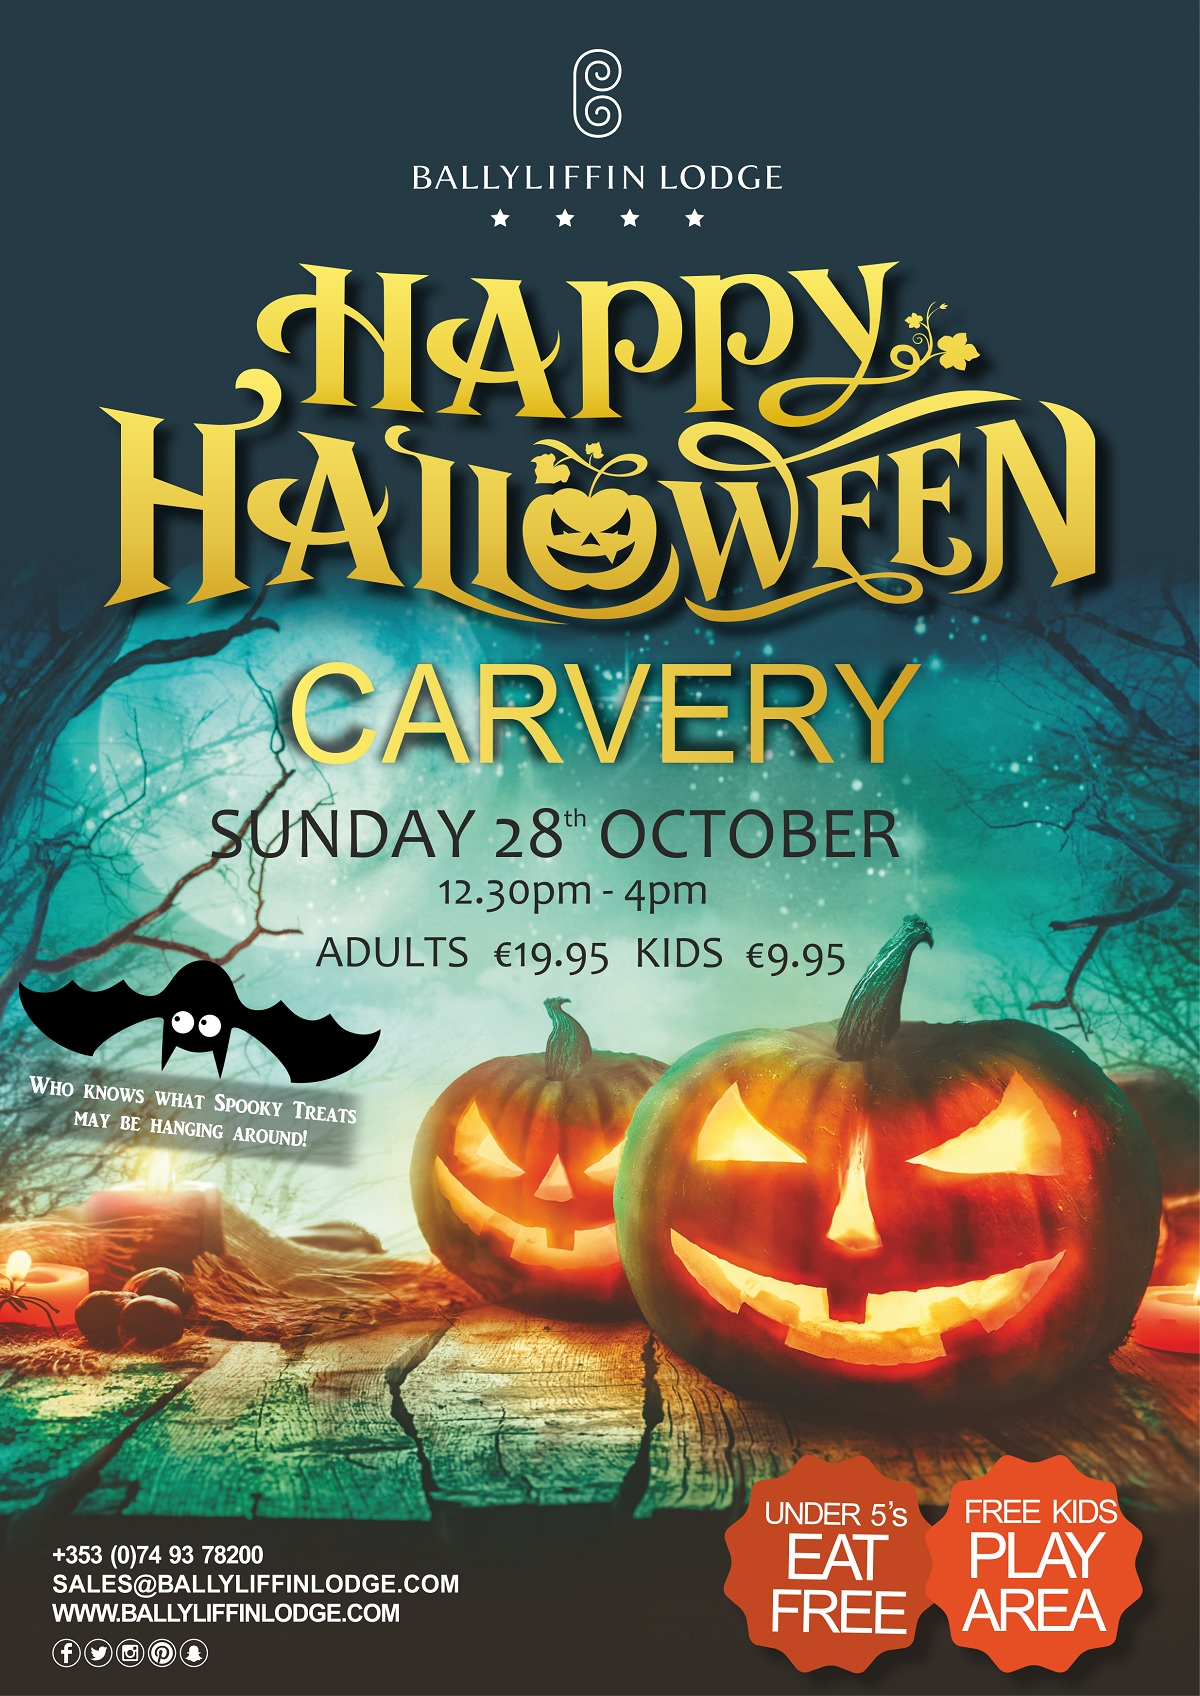 Halloween Carvery at Ballyliffin Lodge & Spa Sunday 28th October 2018